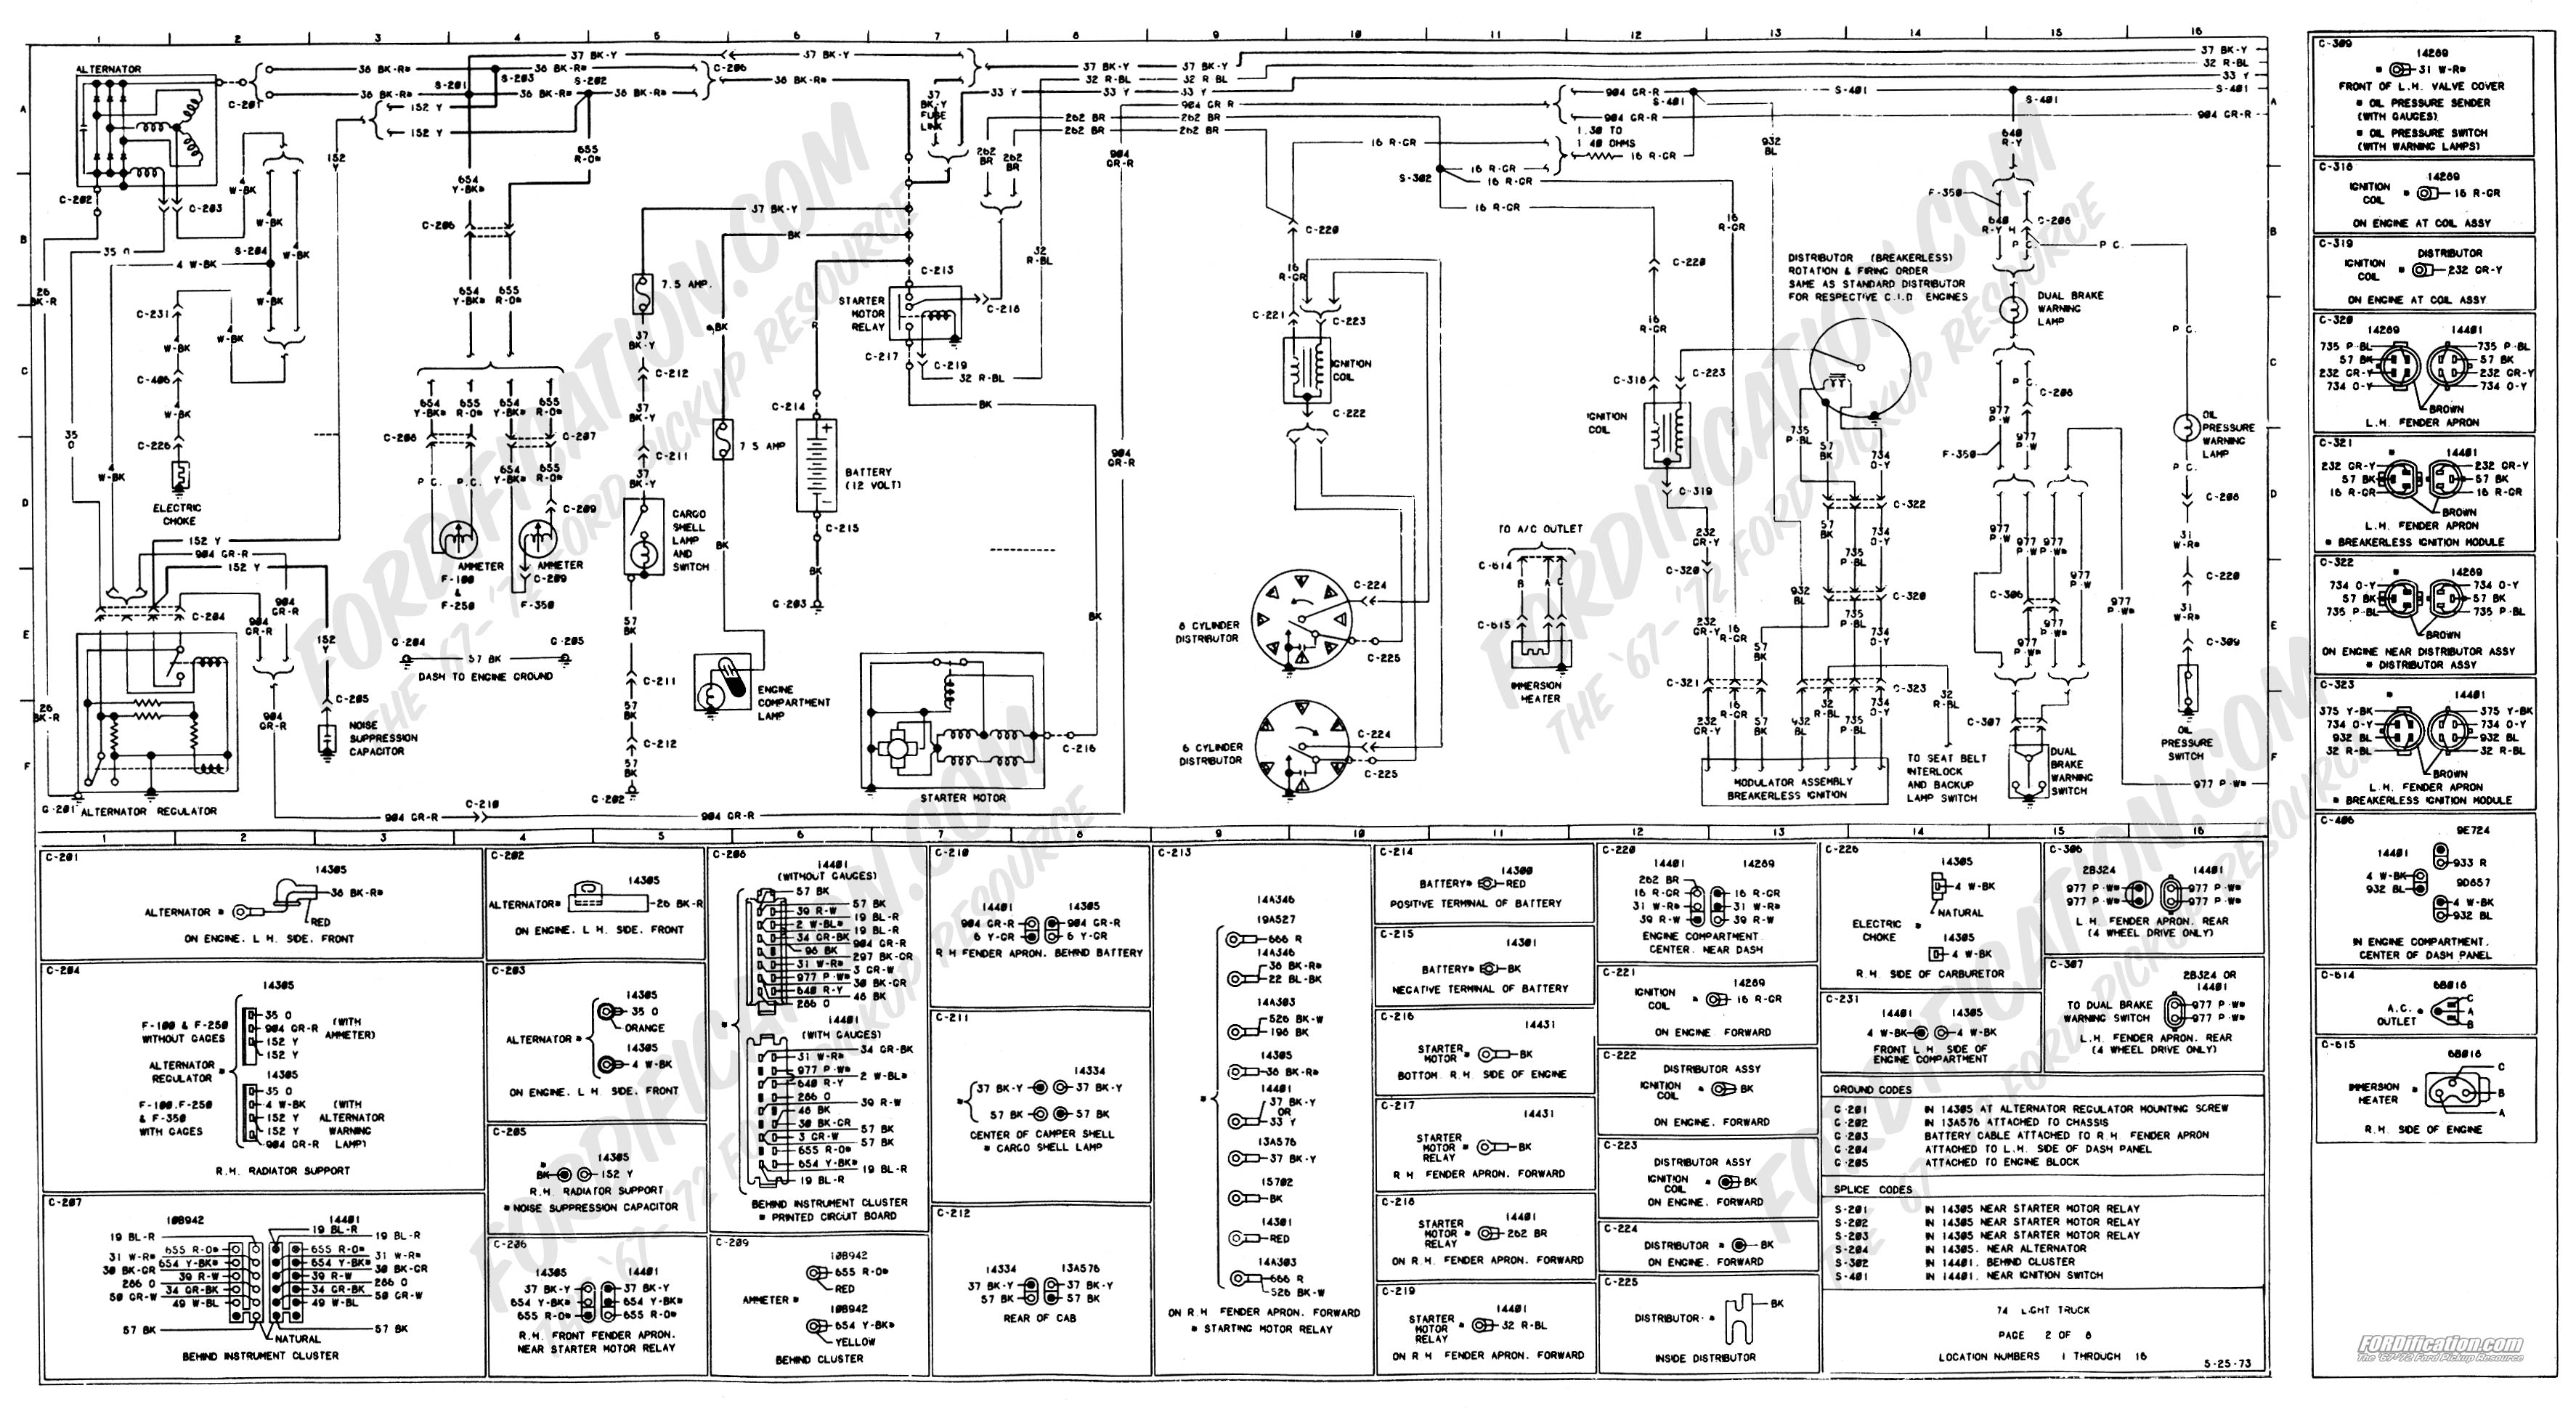 wiring_74master_2of8 1973 1979 ford truck wiring diagrams & schematics fordification net